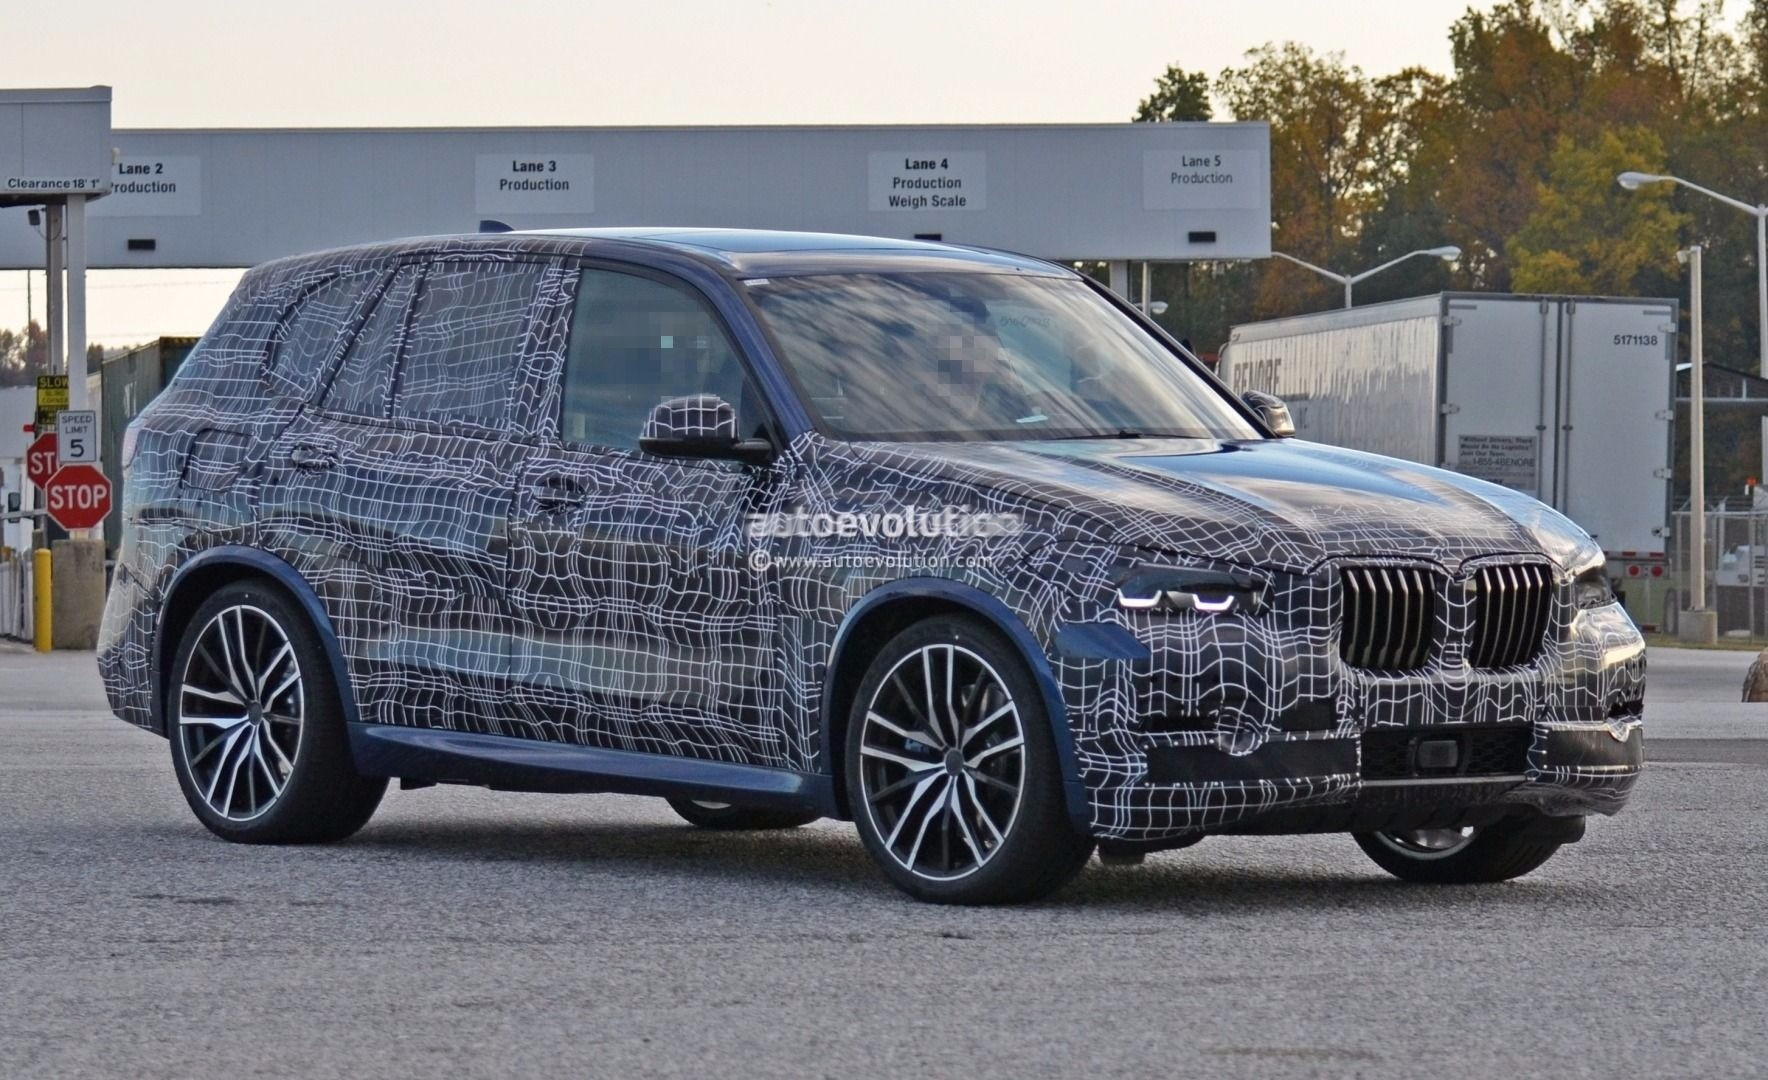 2017 Bmw X5 Redesign >> 2019 BMW X5 (G05) Coming Next Summer, Launching In Q3 2018 - autoevolution